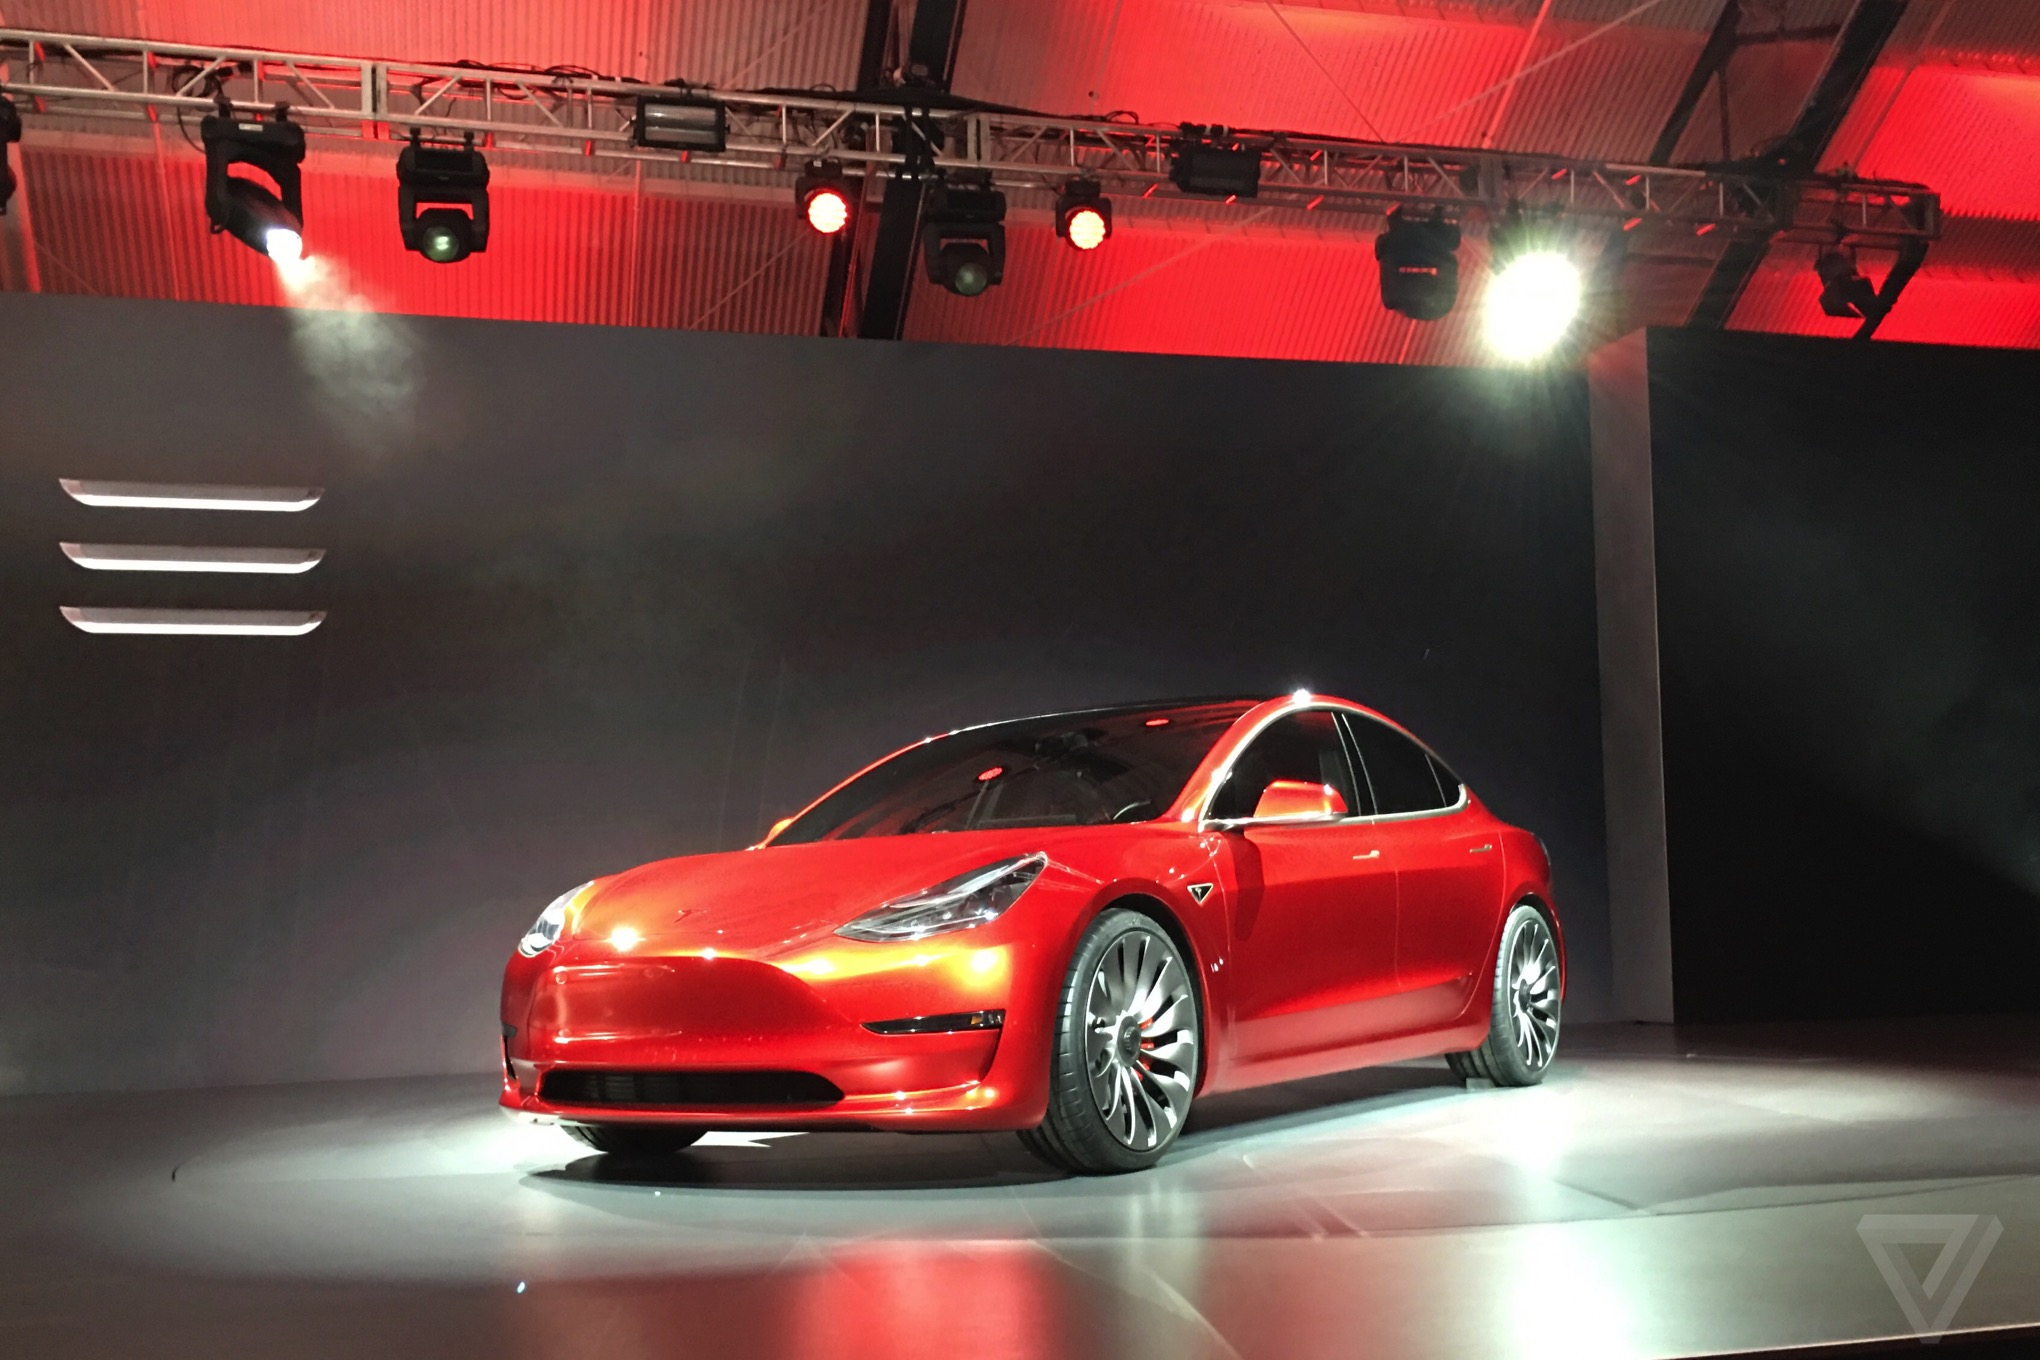 new car model releaseTesla Model 3 announced release set for 2017 price starts at